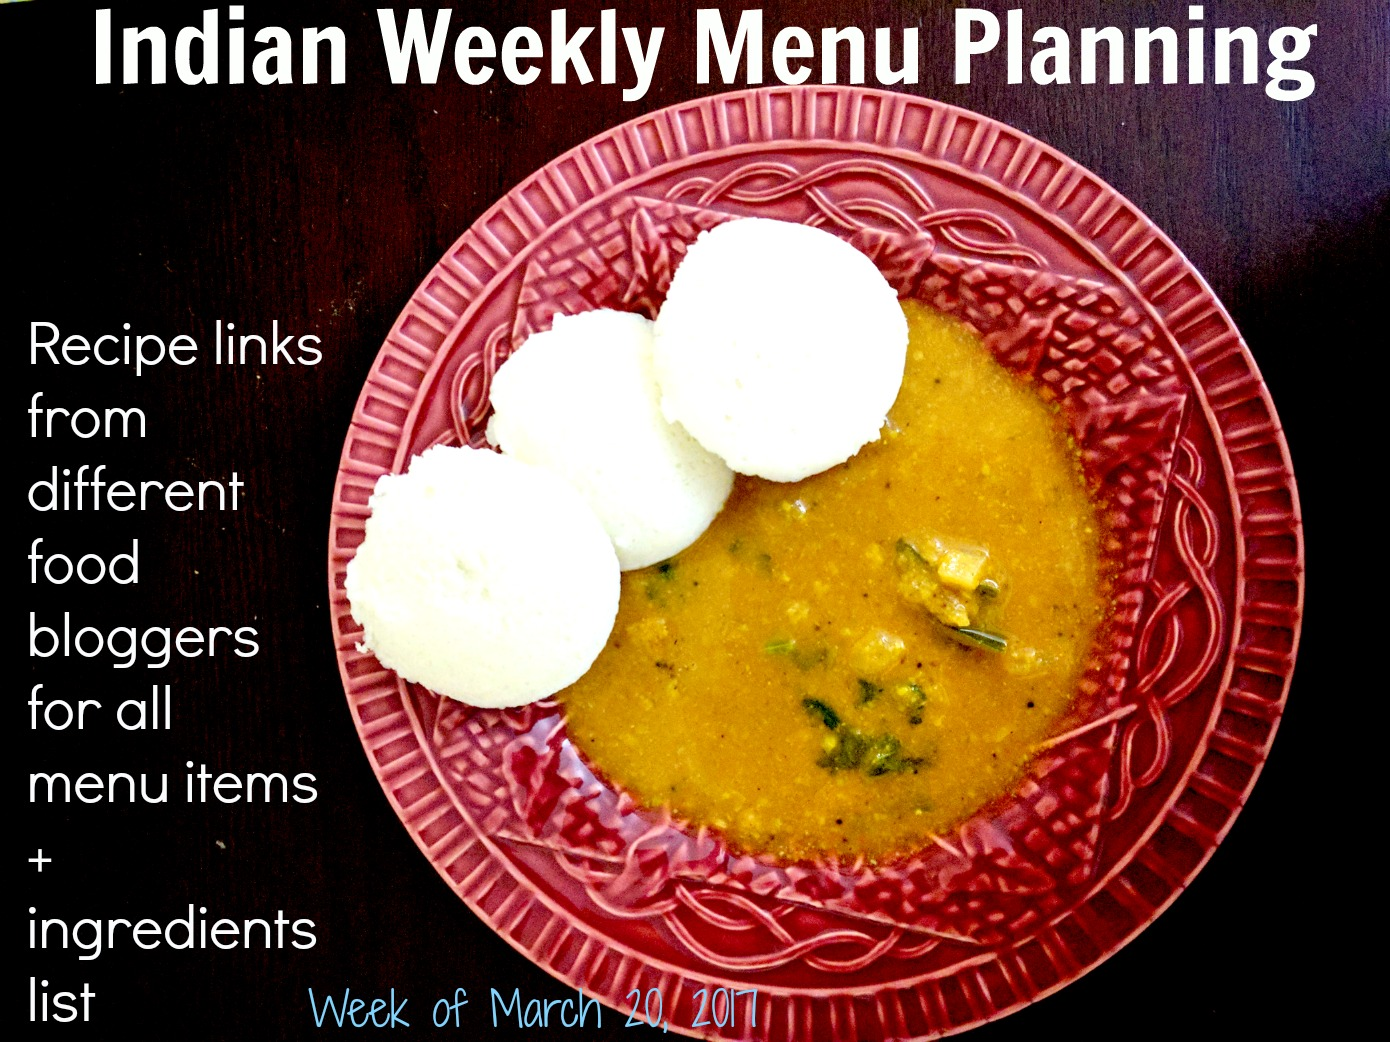 indian menu planning week of march 20 2017 centsible indian